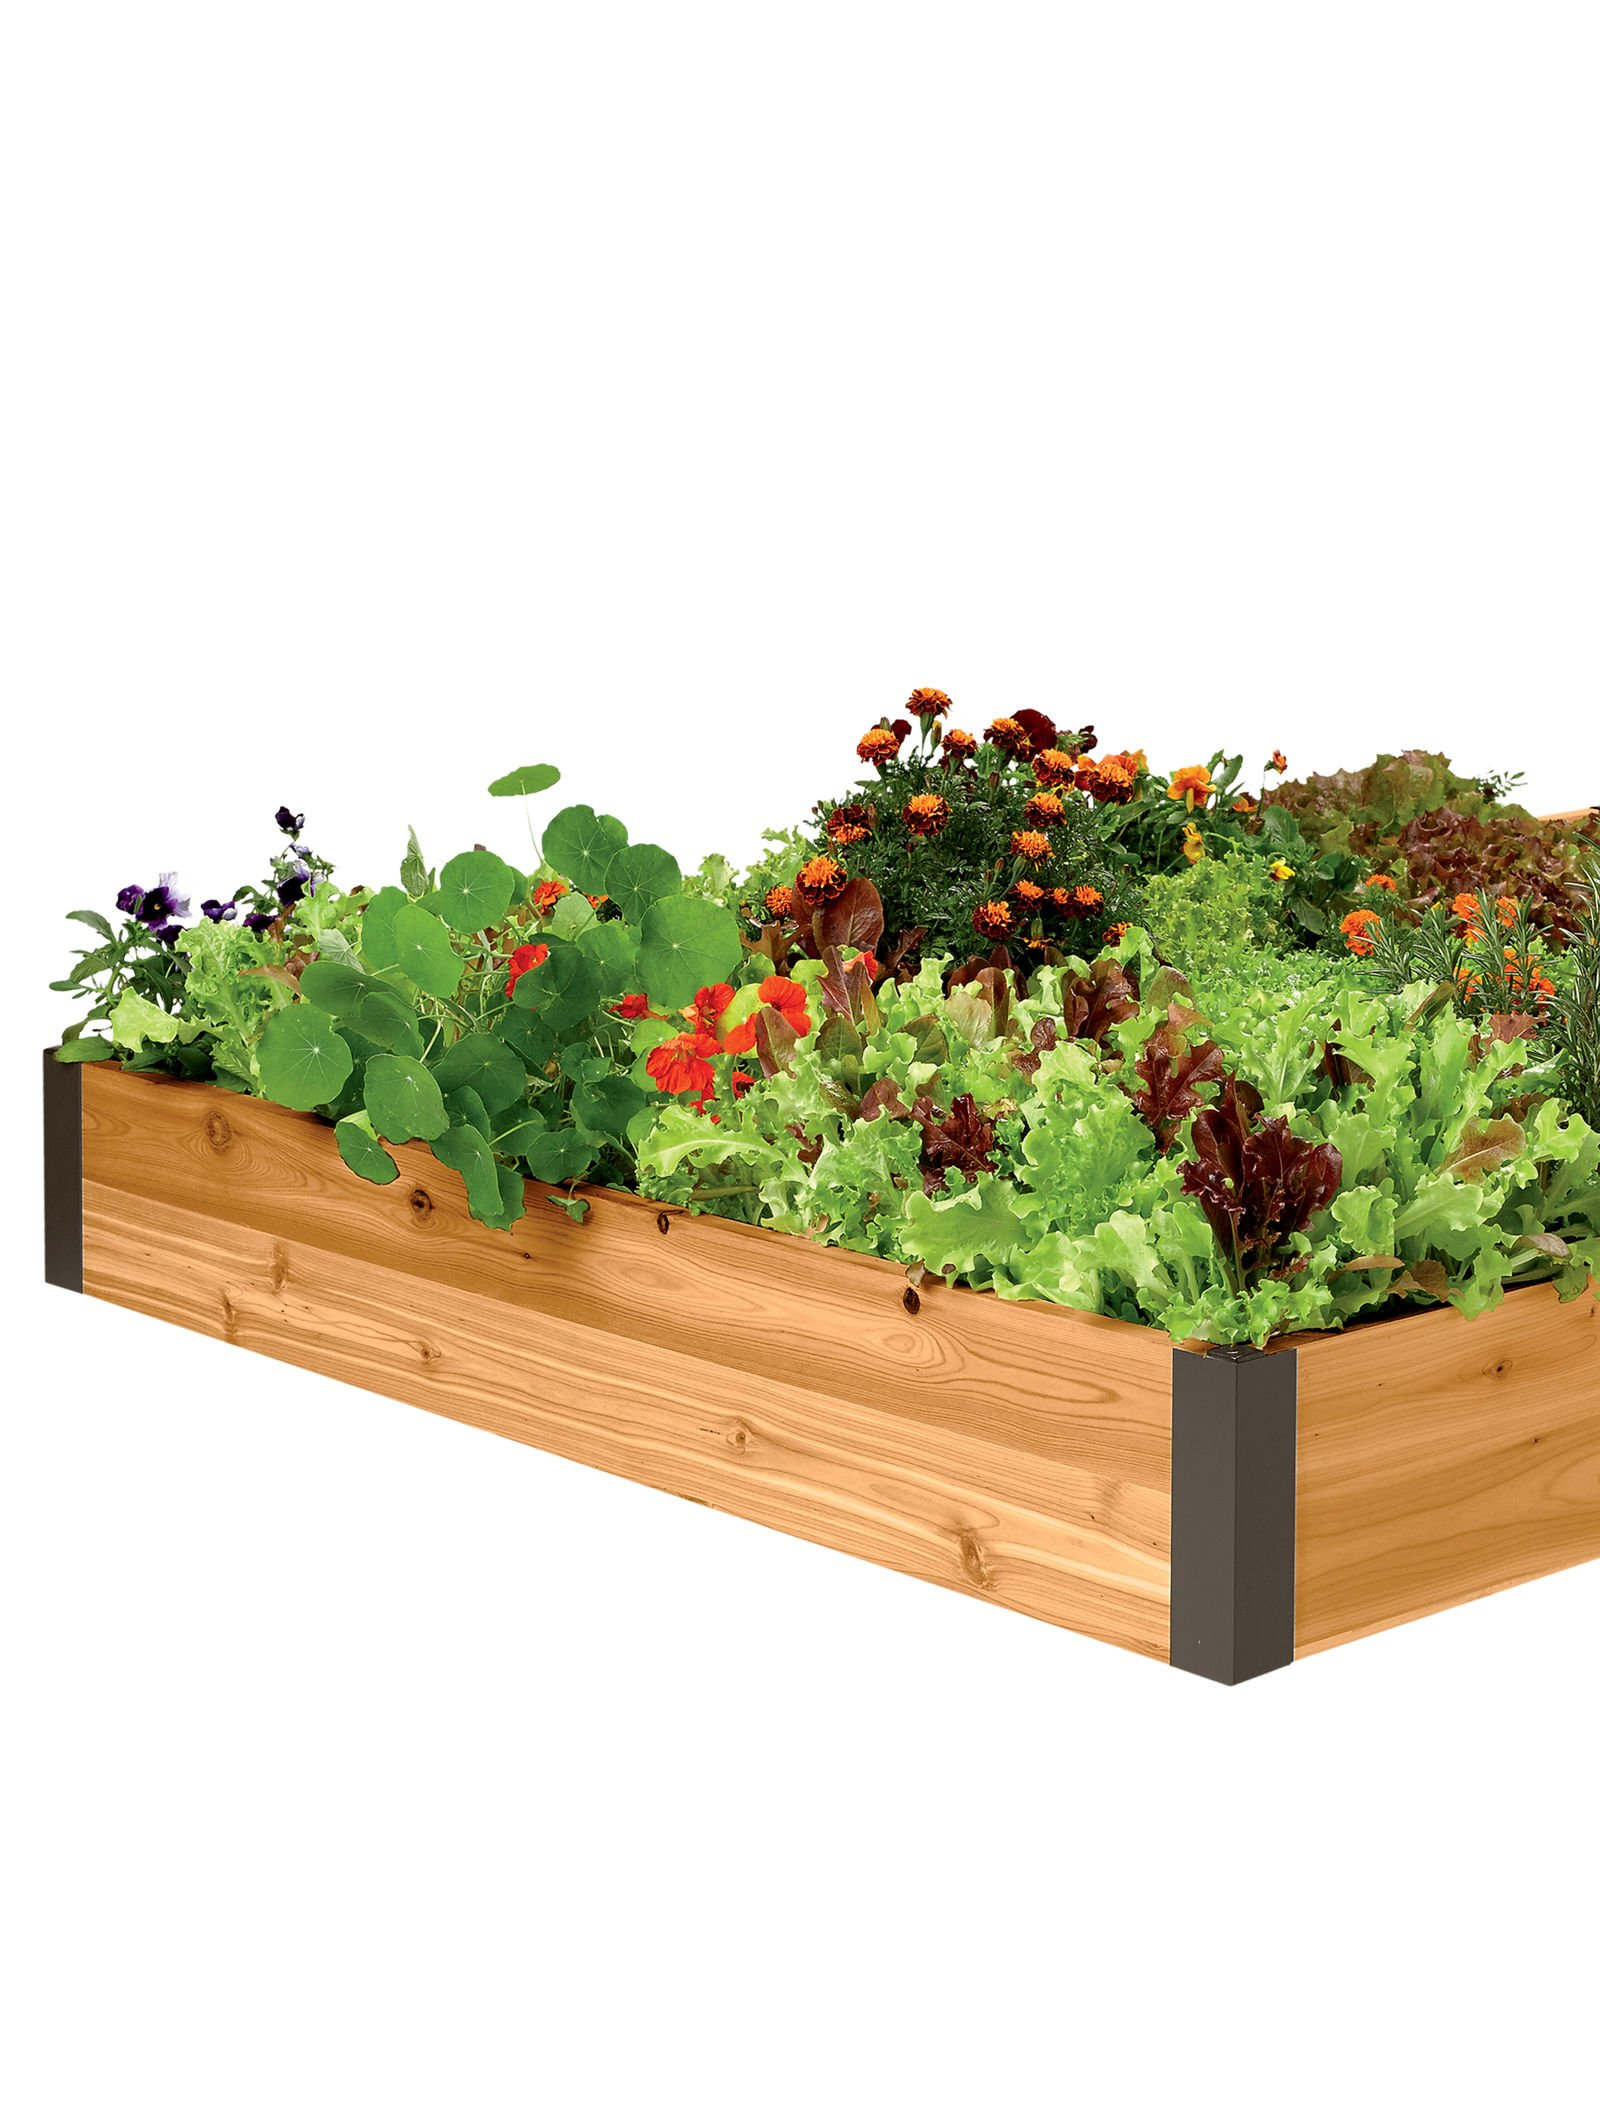 Raised Garden Bed 4' x 12'